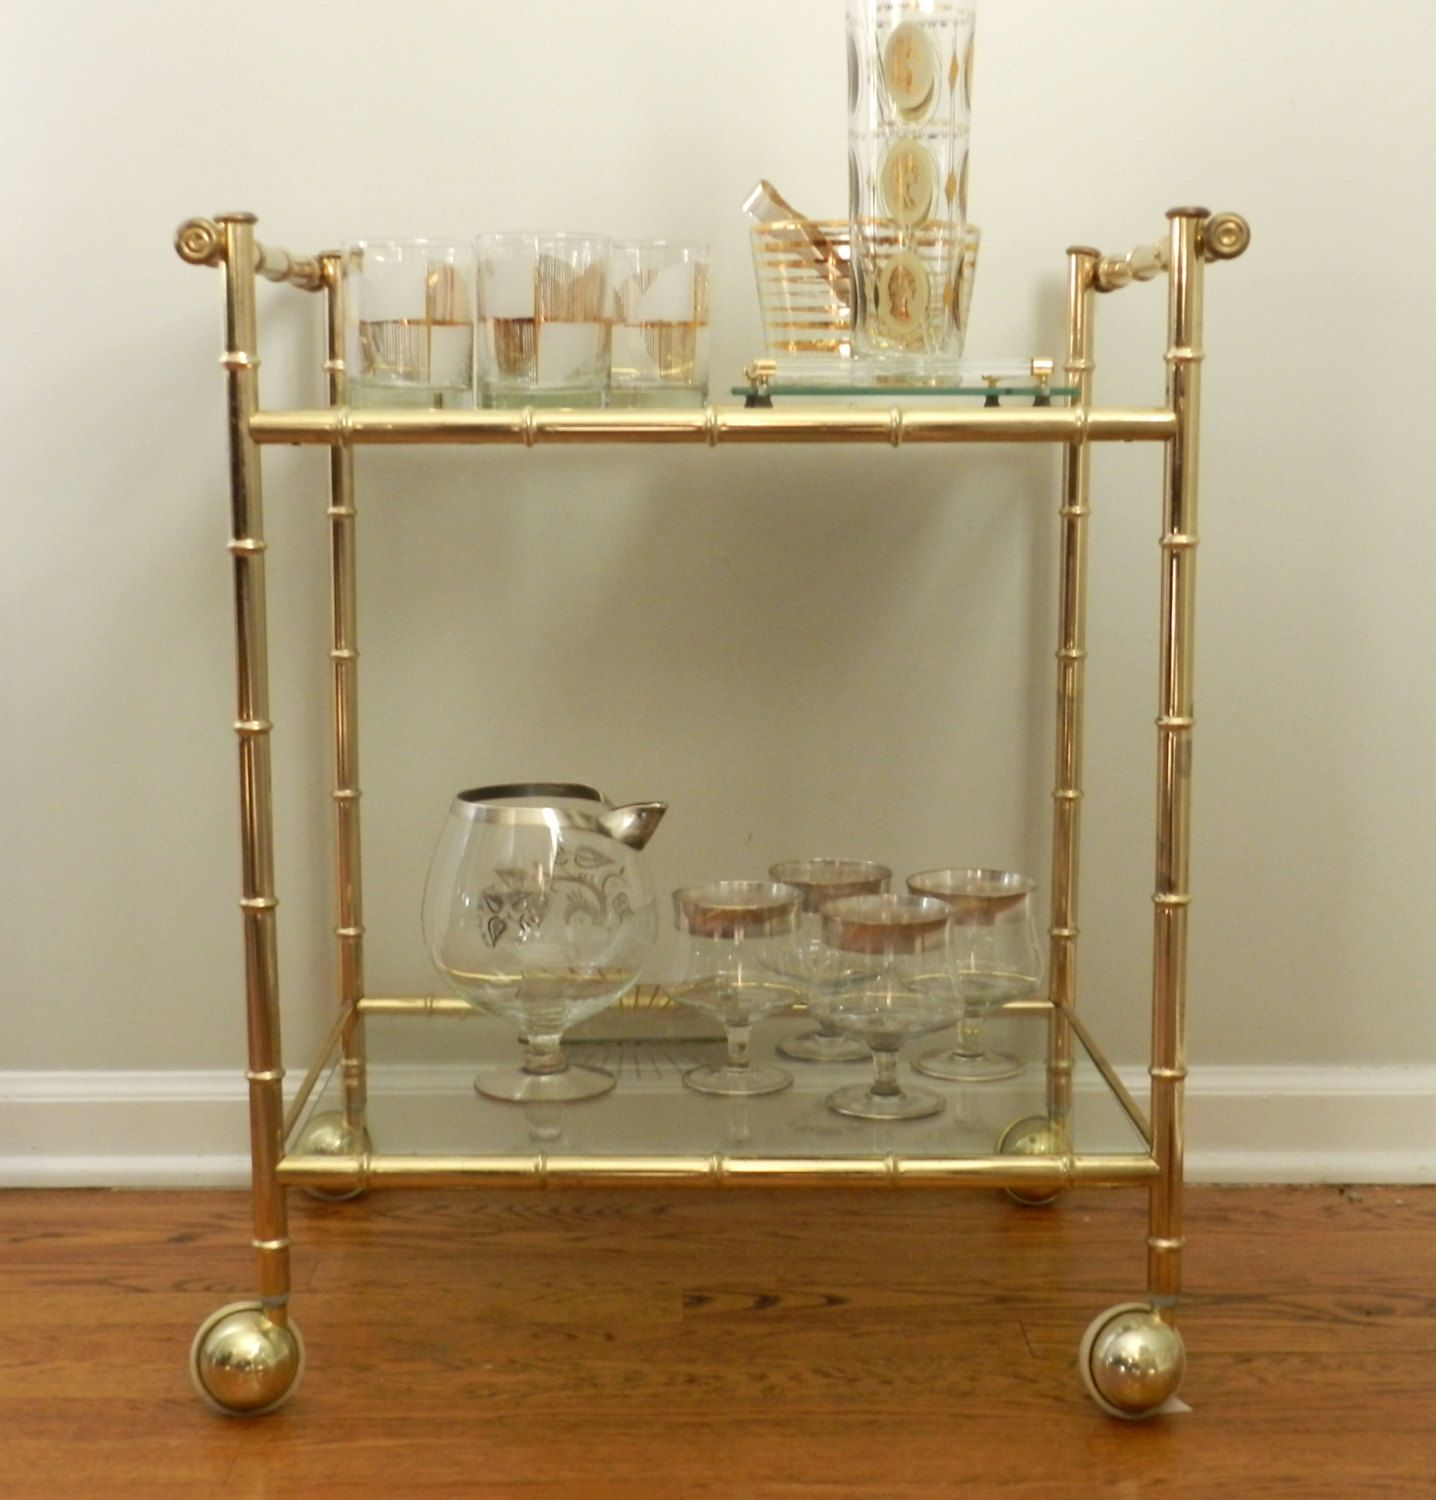 Vintage Bar Cart Gold Metal Faux Bamboo Glass Tiers Rolling Etsy Vintage Bar Carts Bamboo Bar Vintage Bar Gold bamboo bar cart